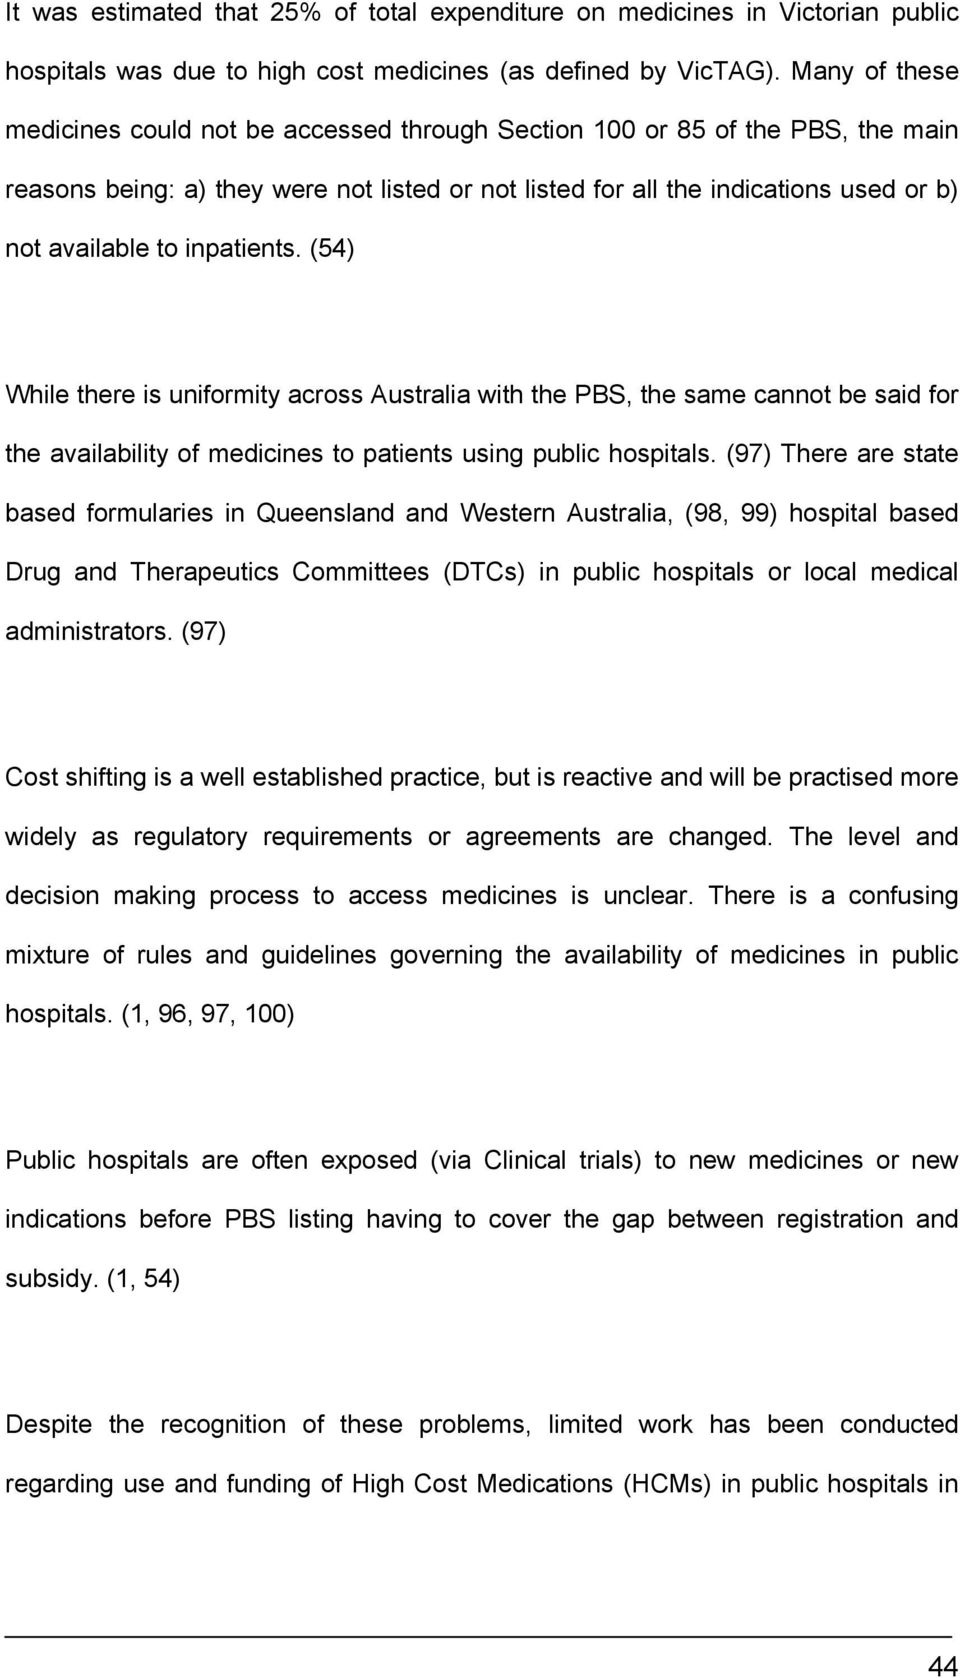 inpatients. (54) While there is uniformity across Australia with the PBS, the same cannot be said for the availability of medicines to patients using public hospitals.